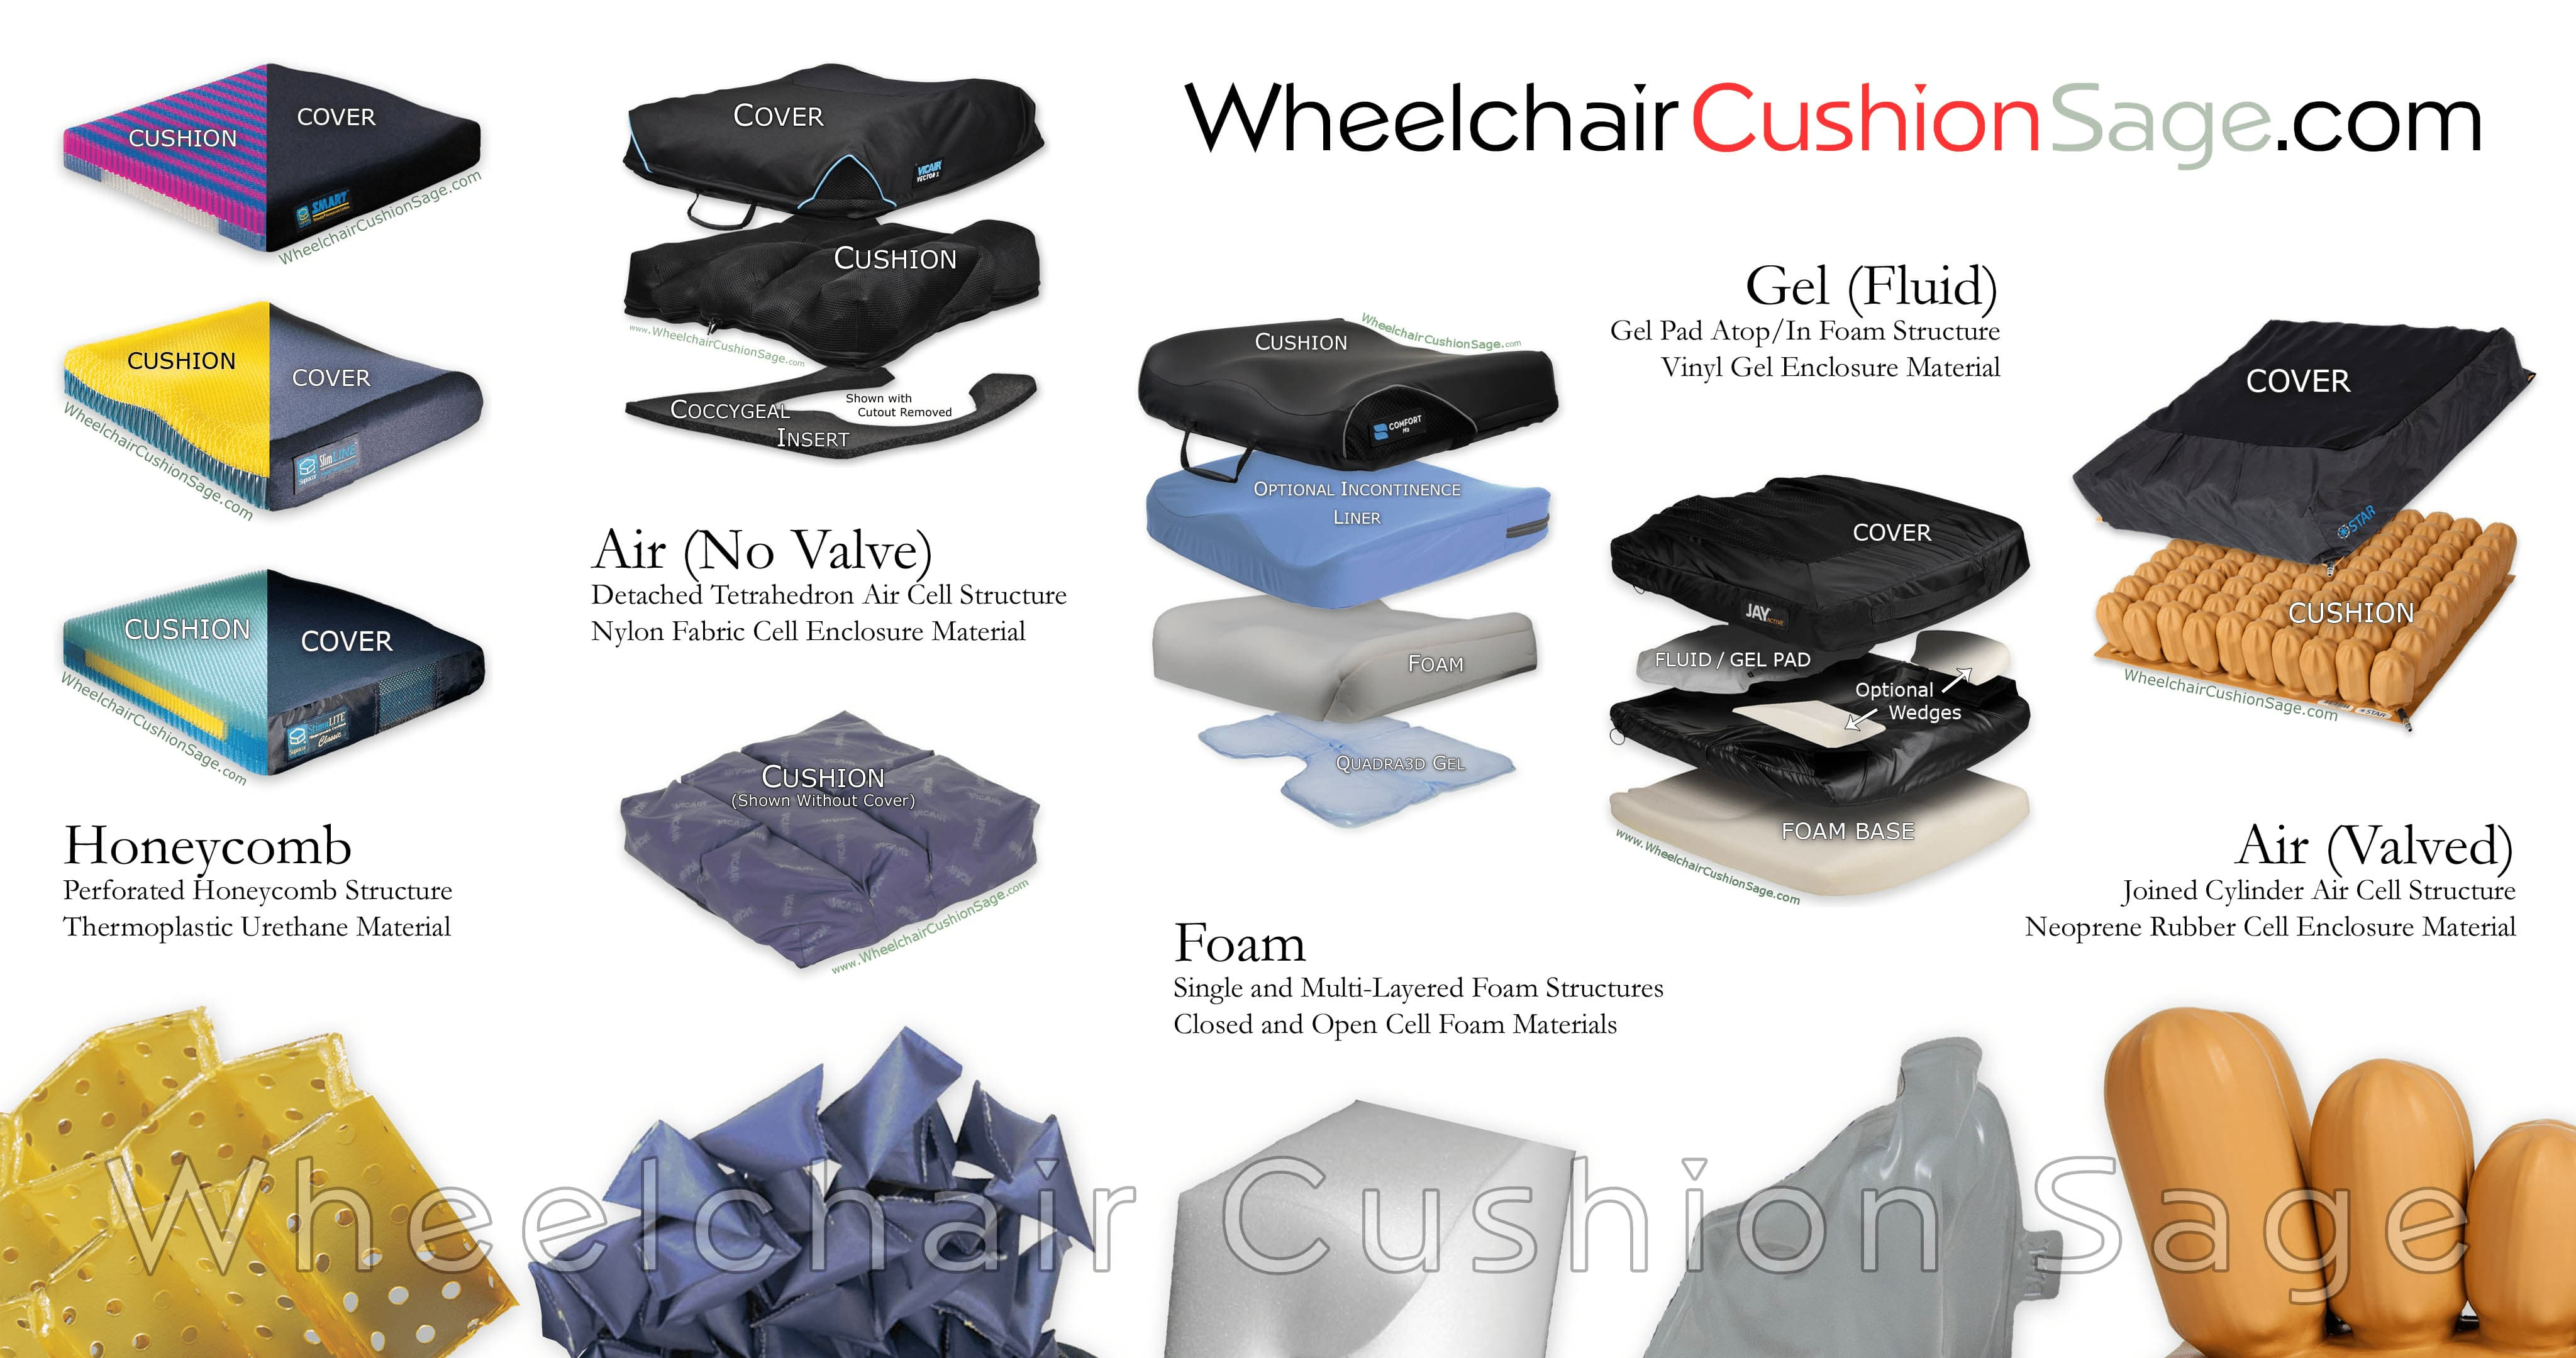 Wheel Chair Cushion Wheelchair Cushion Sage